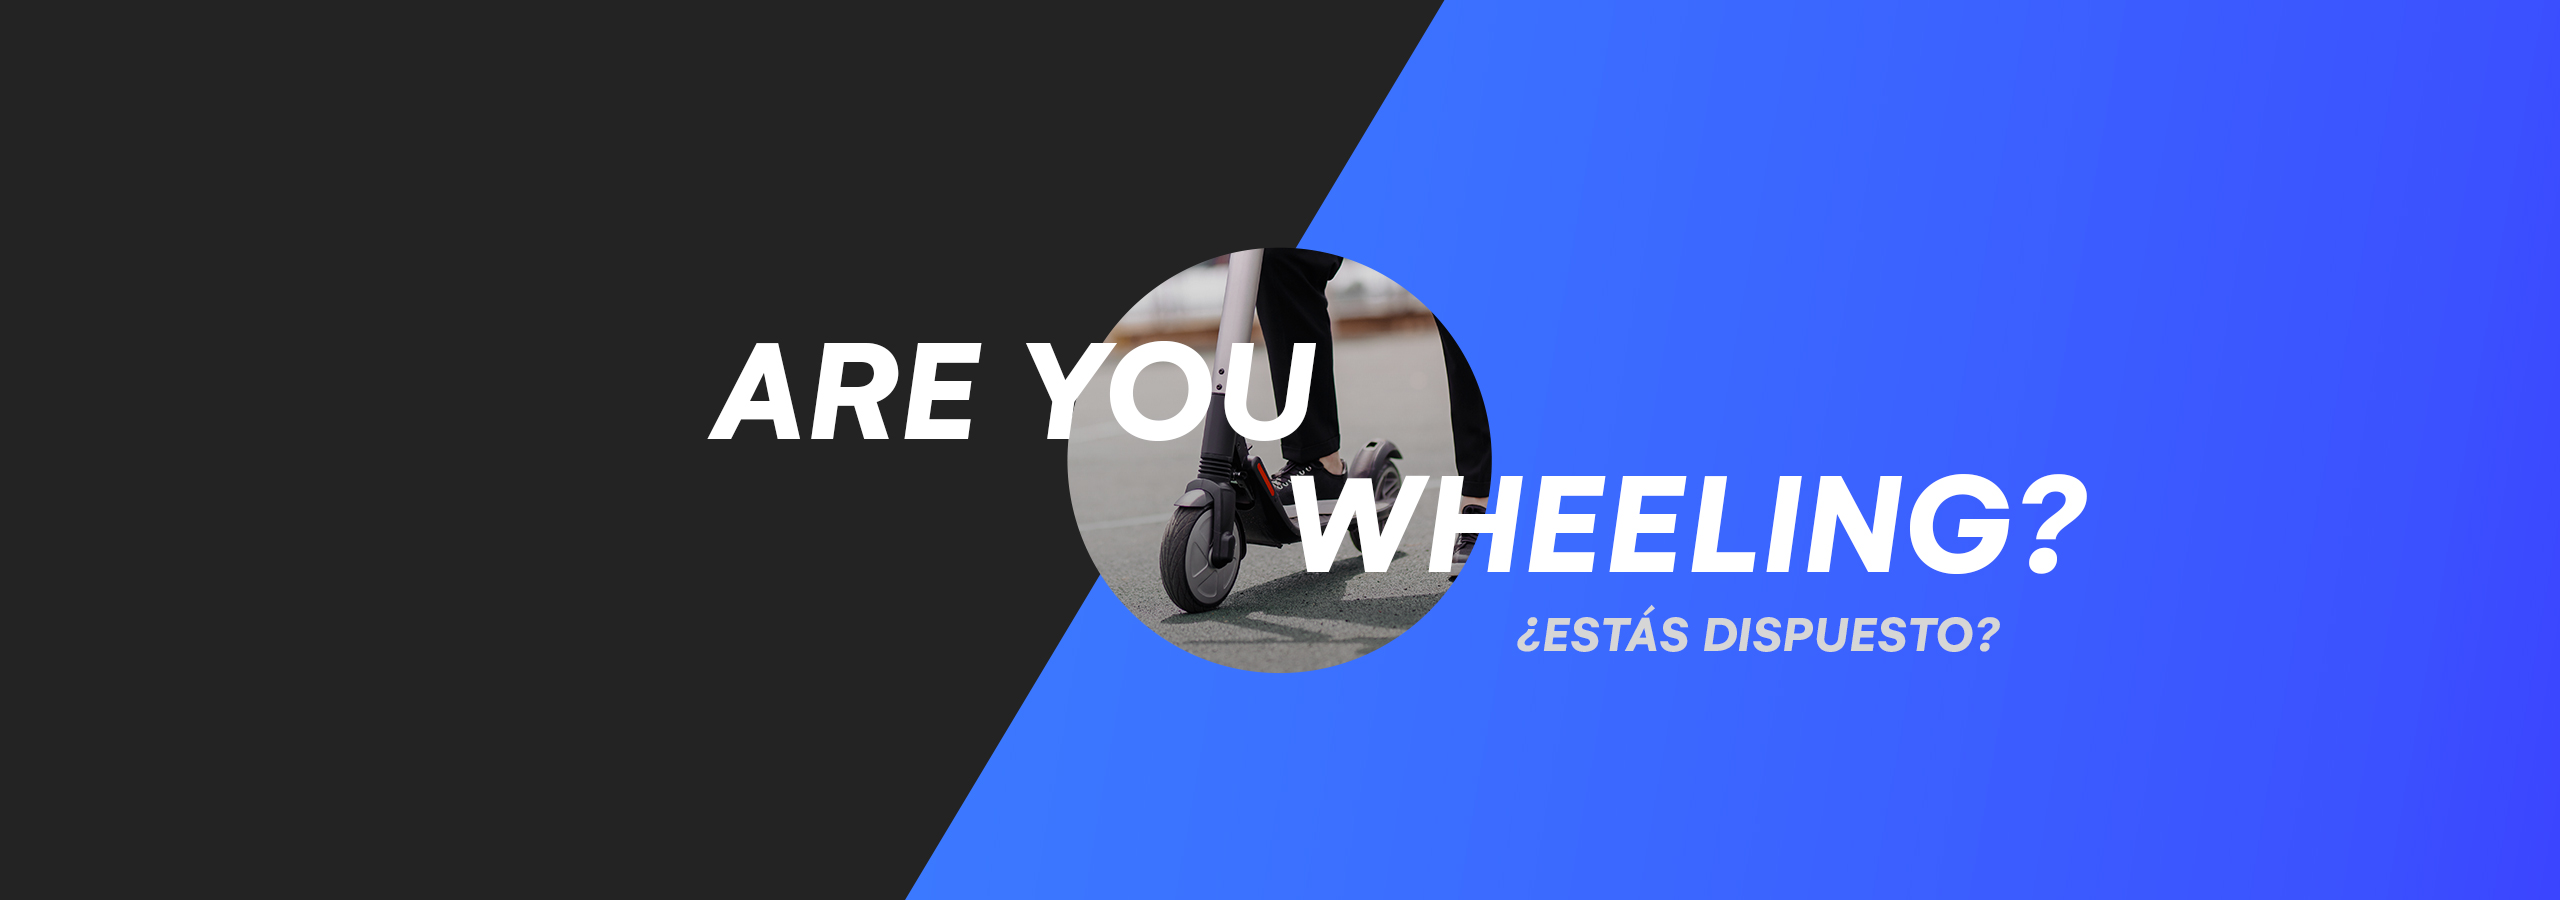 Are you Wheeling?